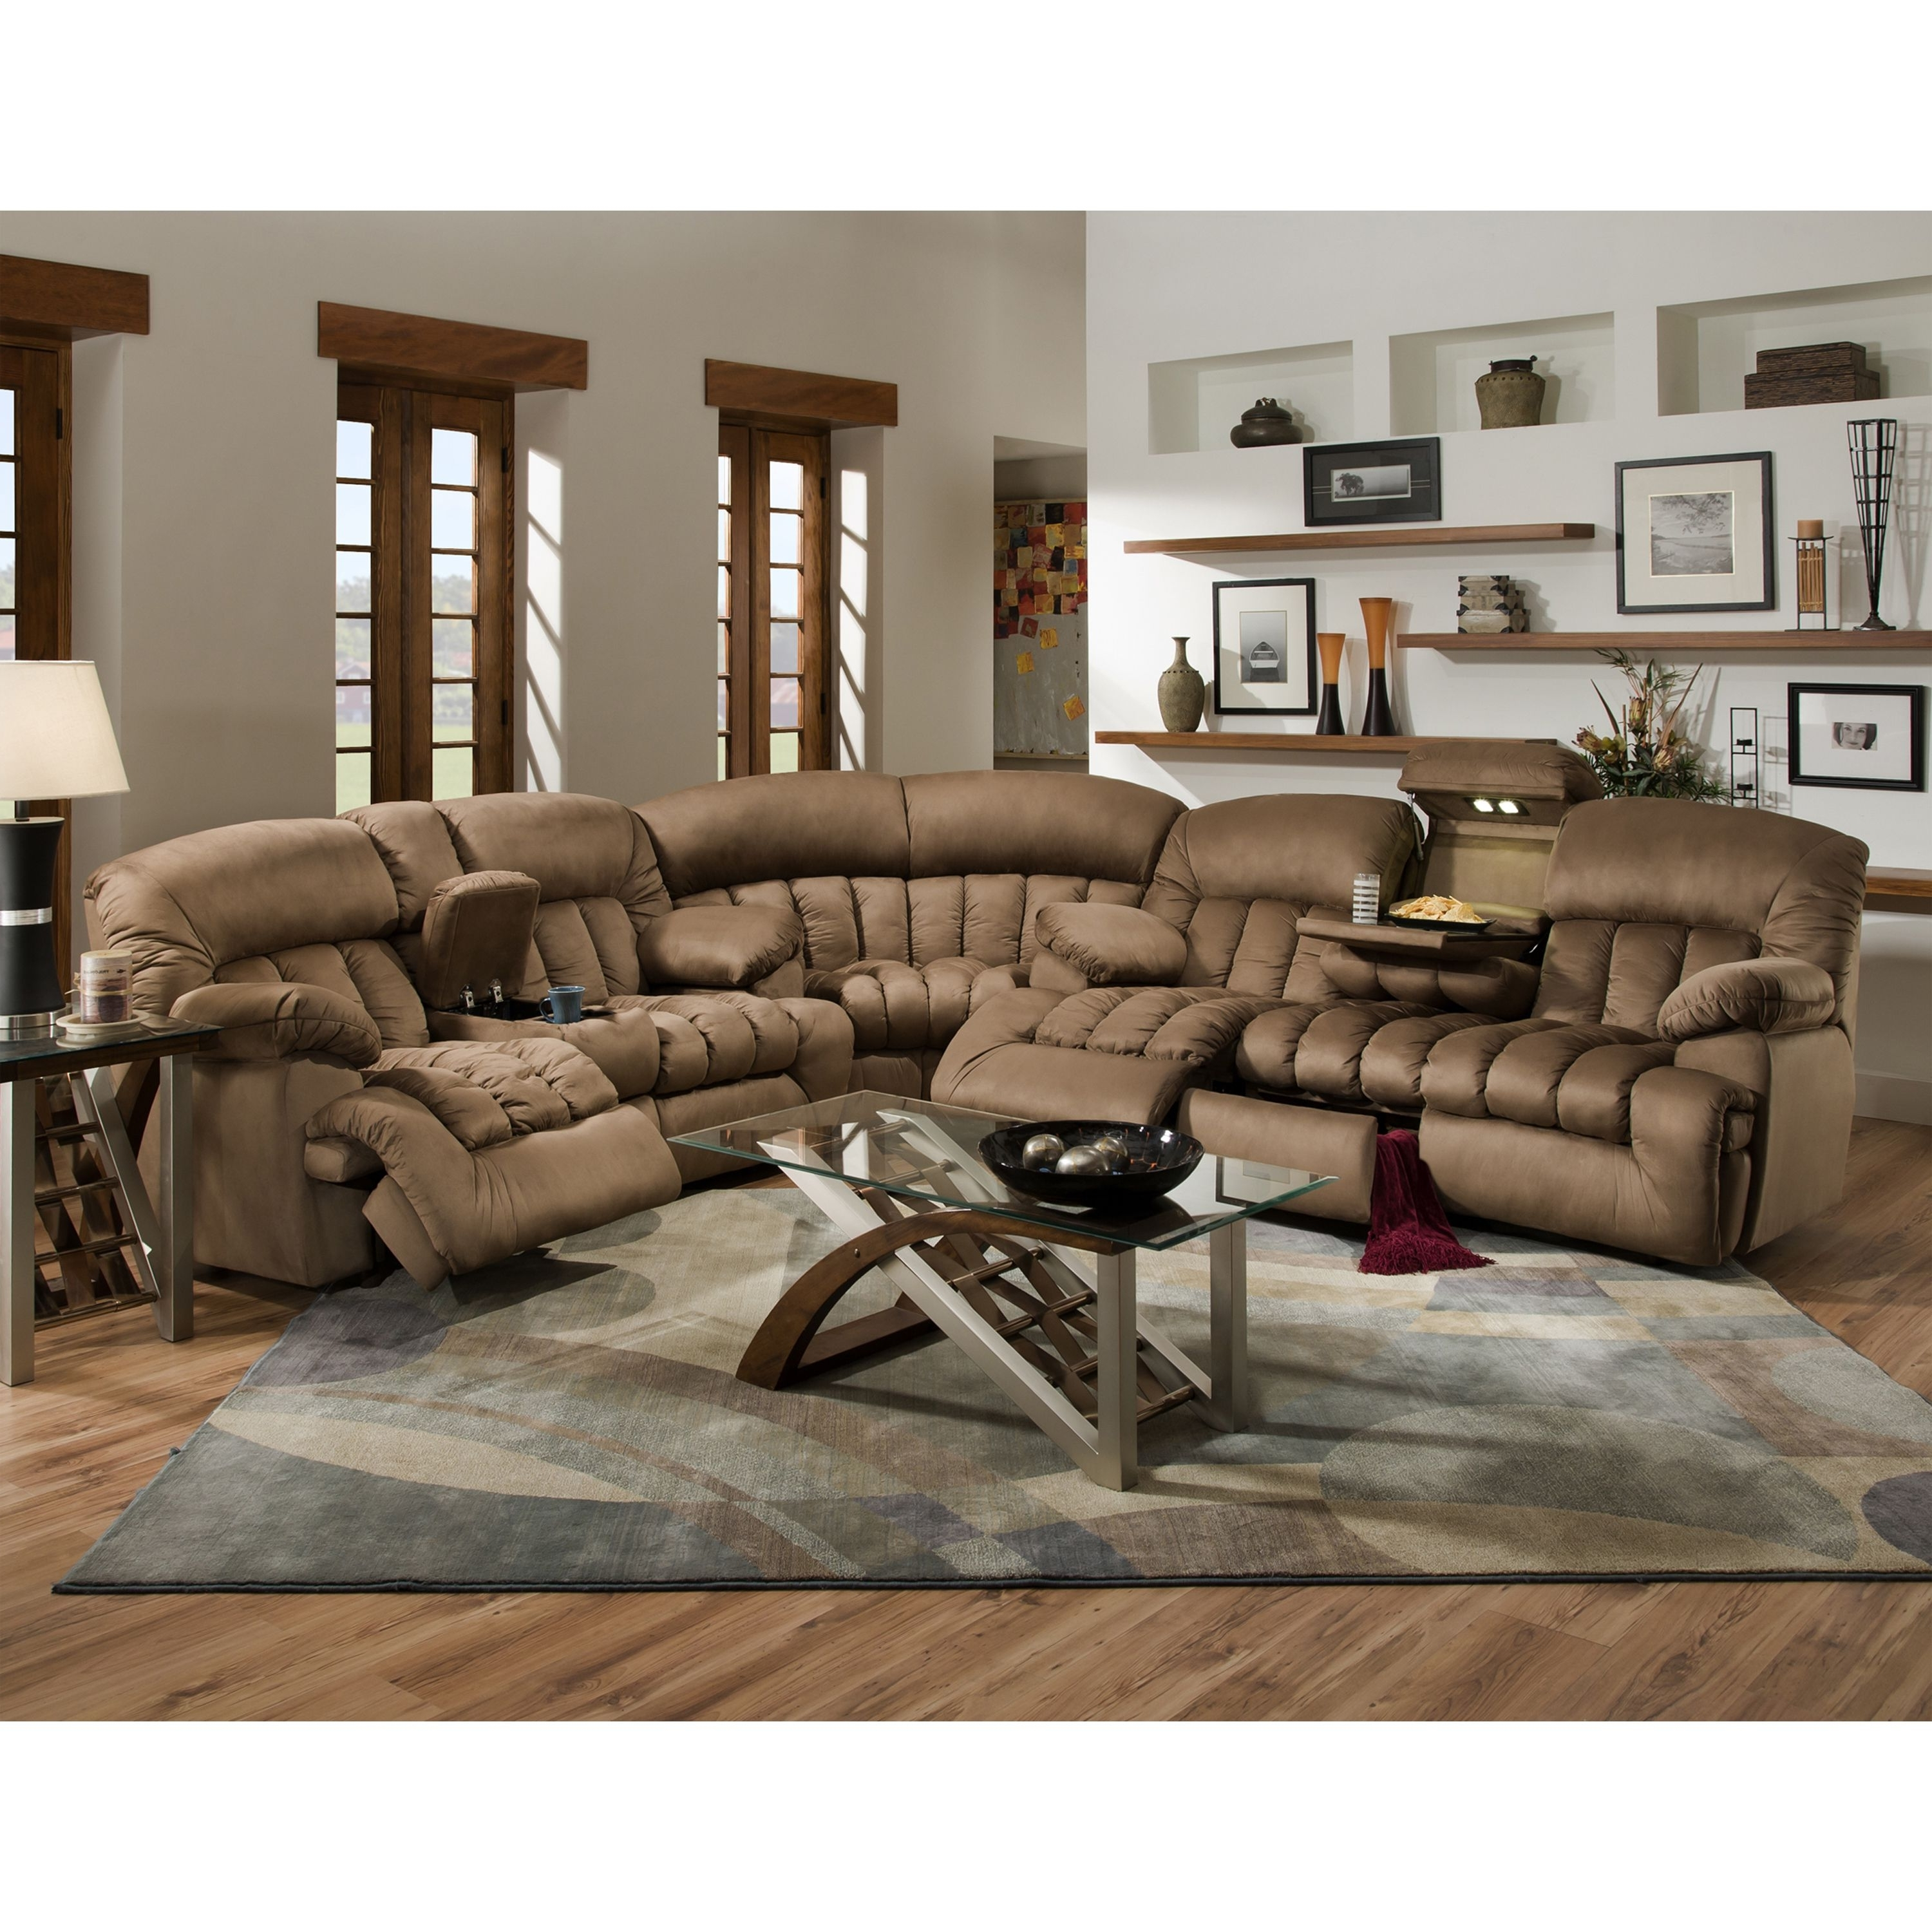 Most Popular This Gorgeous, Comfortable, 3 Piece Sectional Sofa Features A Throughout Murfreesboro Tn Sectional Sofas (View 19 of 20)